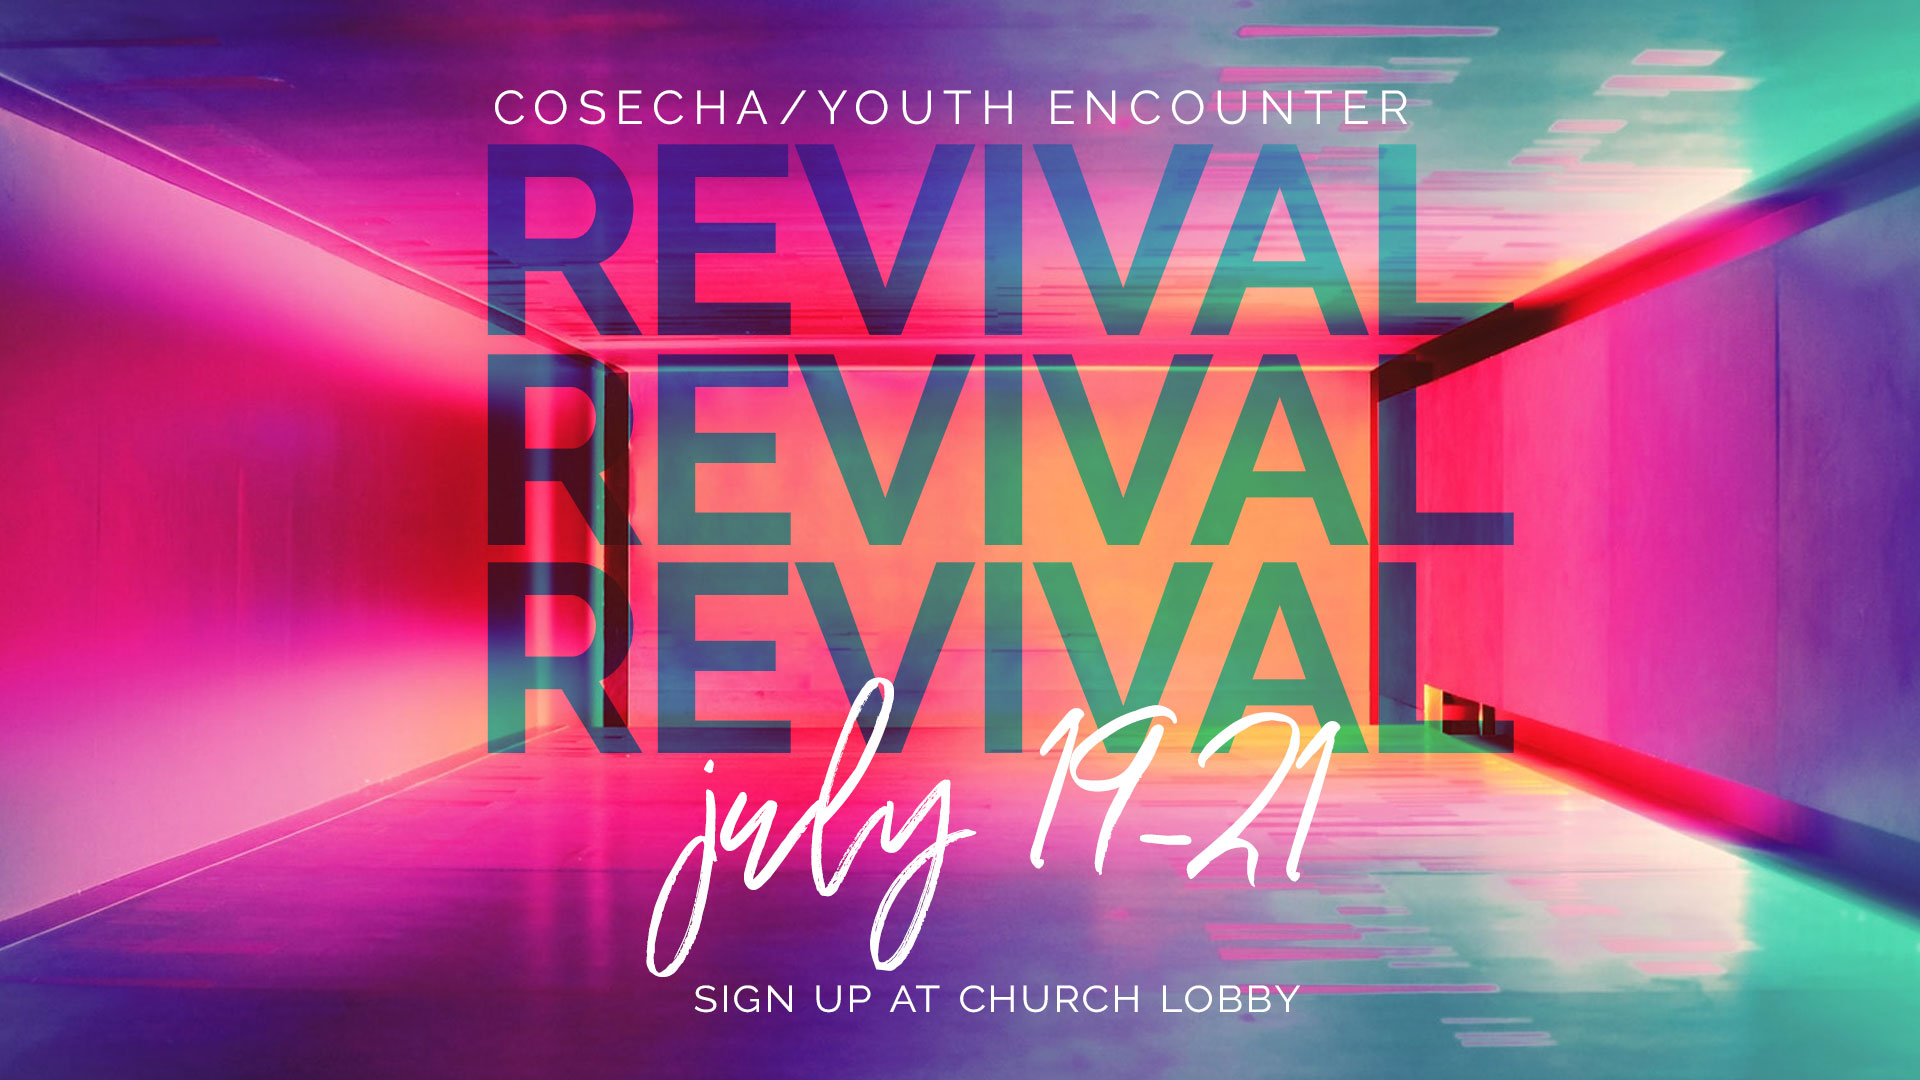 071919_revival_encounter.jpg